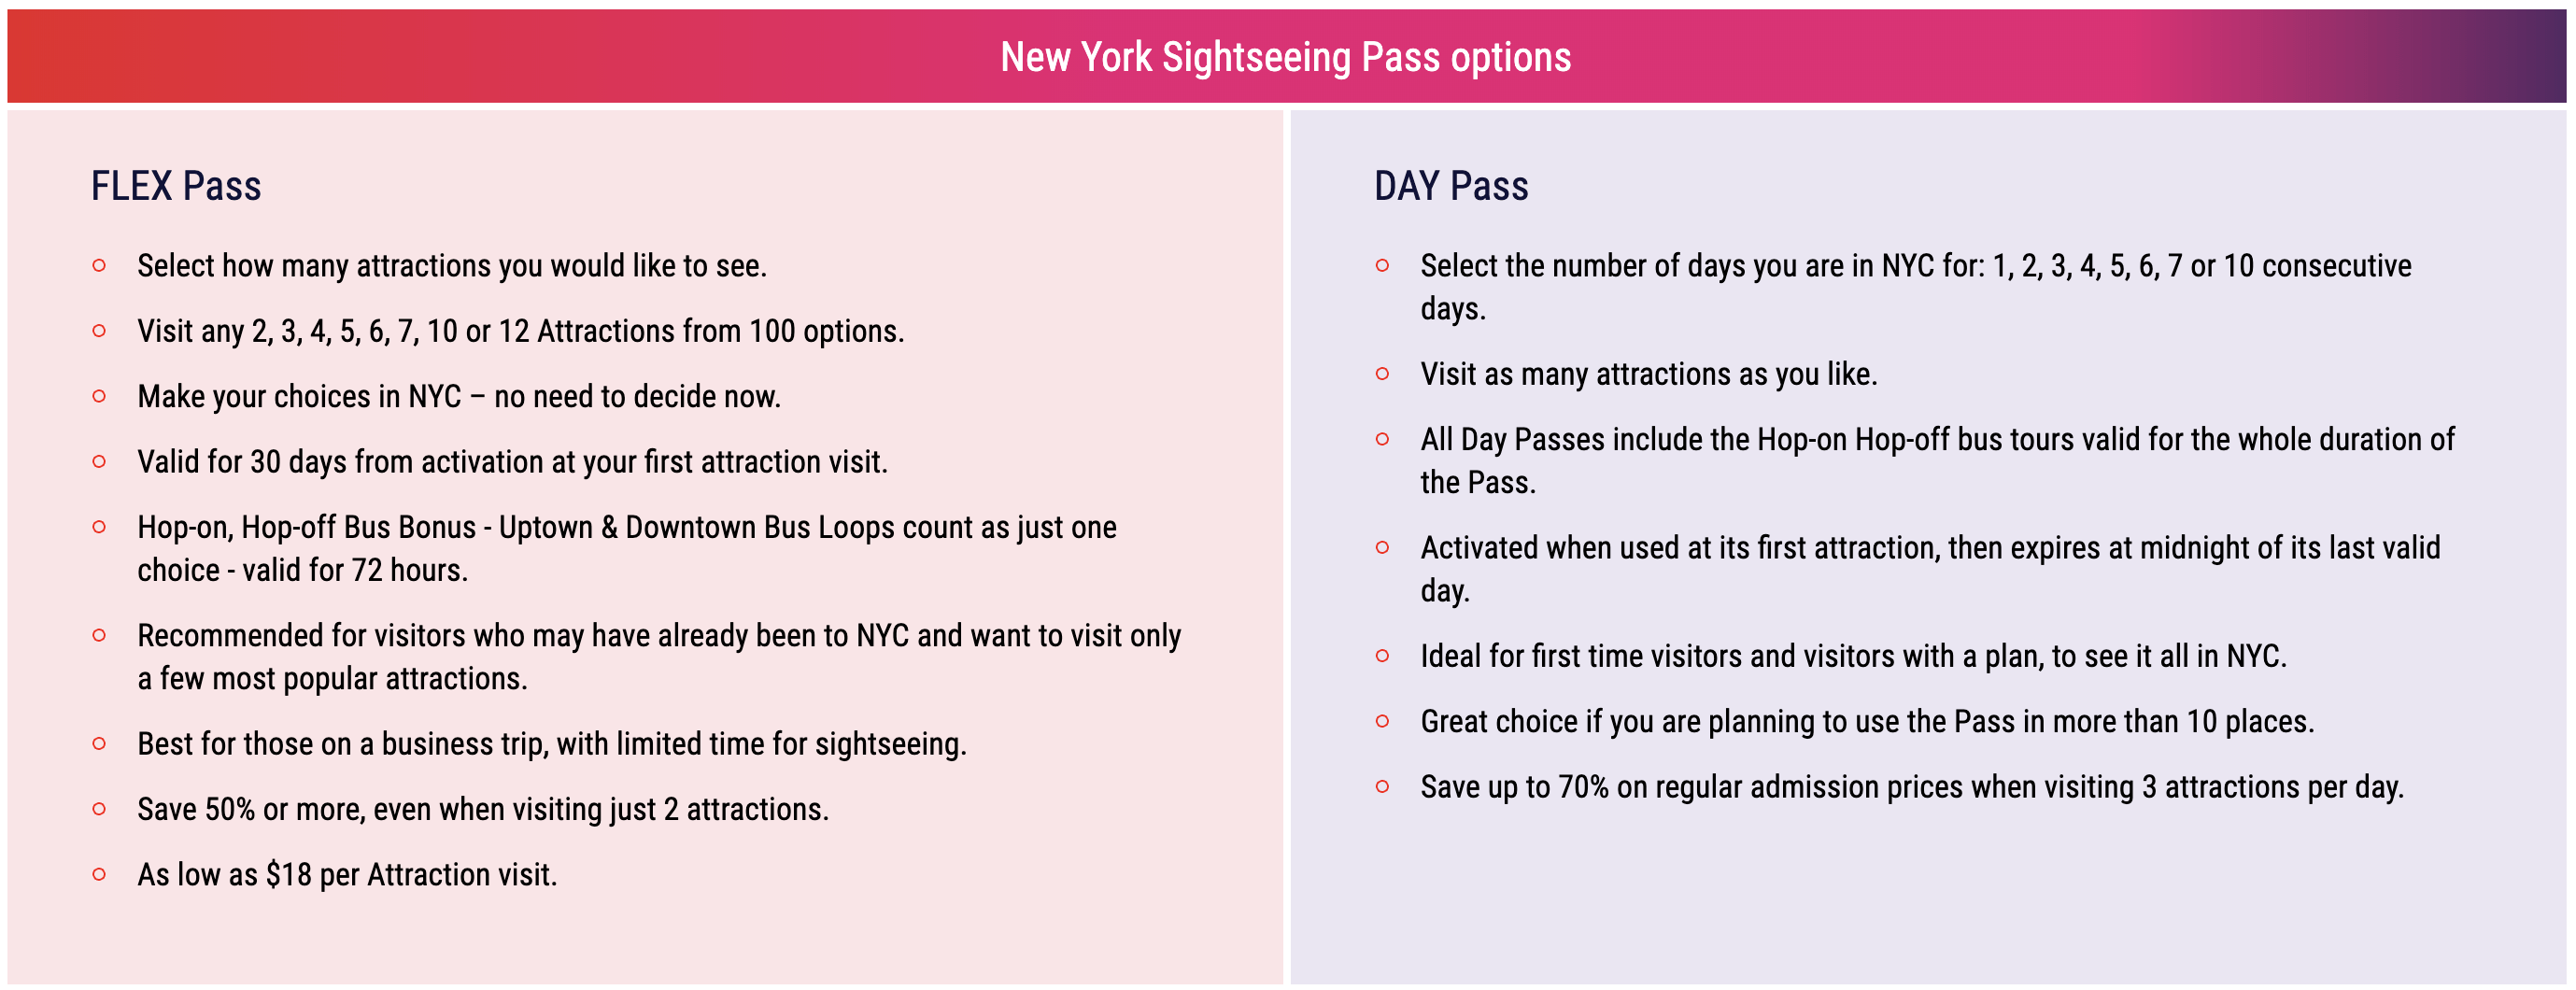 BTSNYC Experiences On Going Sightseeing Pass New York